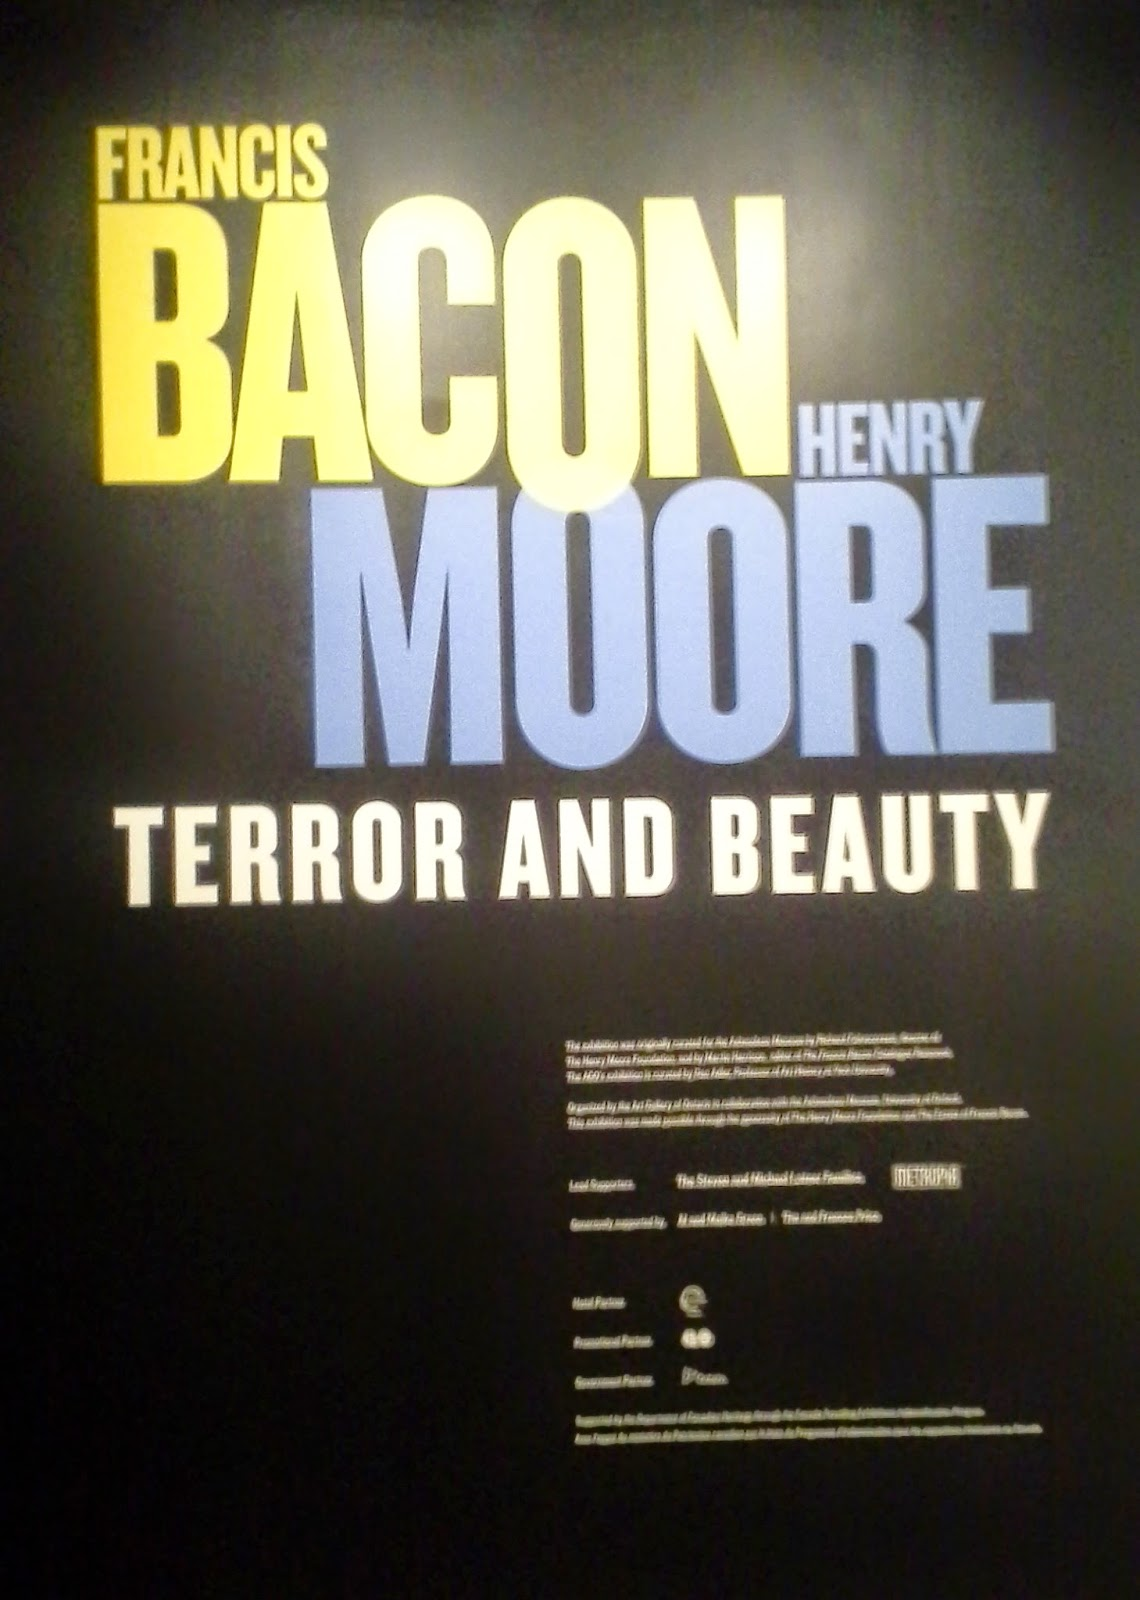 Francis Bacon and Henry Moore: Terror and Beauty exhibit at the AGO in Toronto culture art art matters Melanie.Ps blogger The Purple Scarf